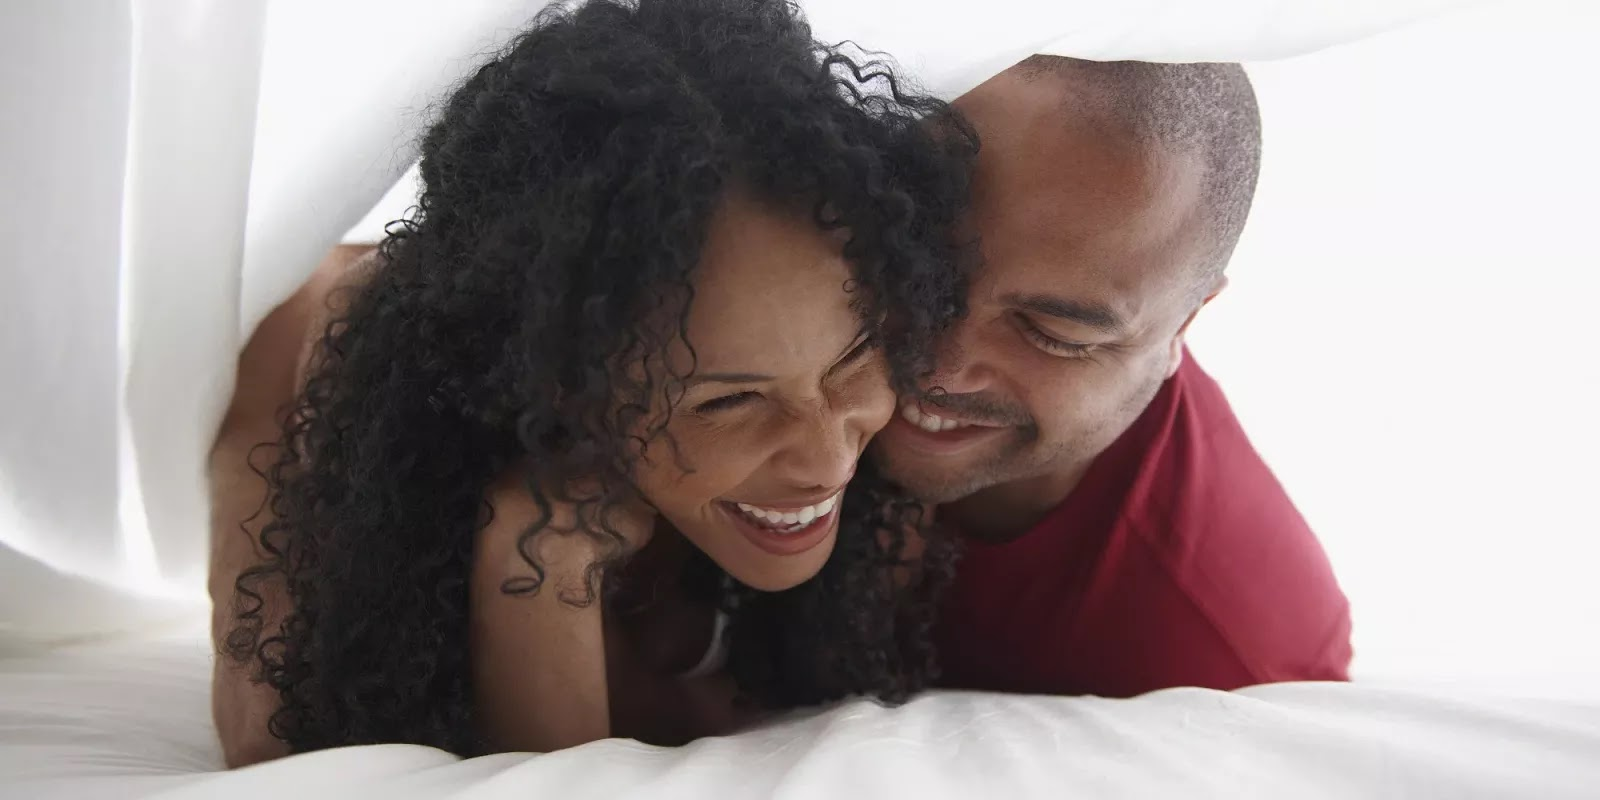 Pictures of black couples in love